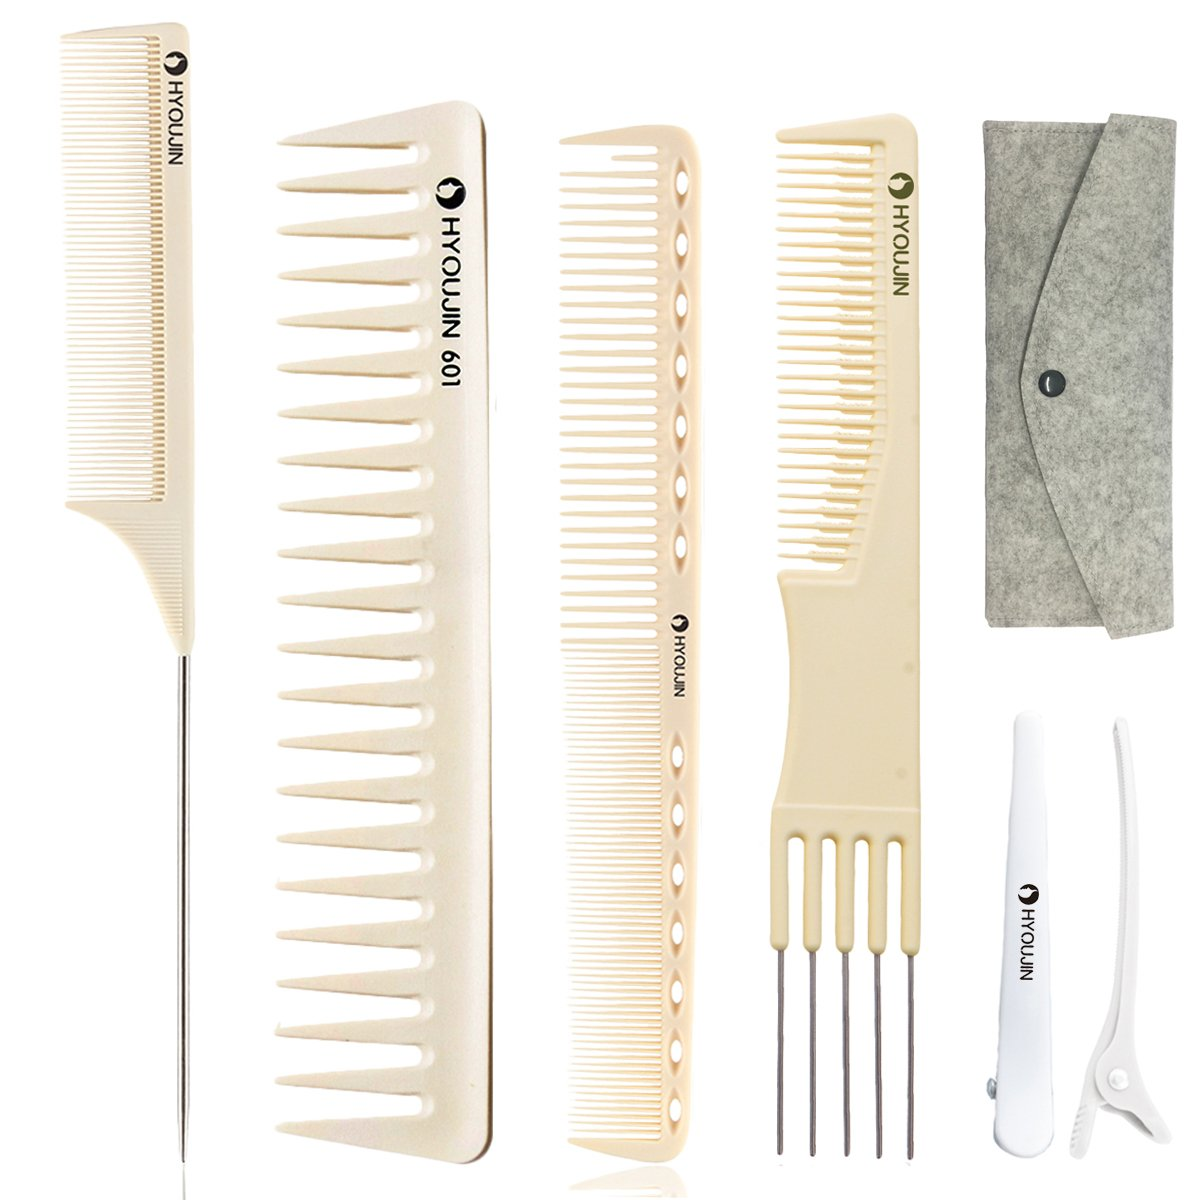 HYOUJIN 6in1 7ps Ivory White Professional Hair Styling Comb Set kit Beard Comb kit set & Heat-resistance w/Cutting Comb + Wide tooth comb + Pintail comb + 2 Hair Clips & Felt Pouch